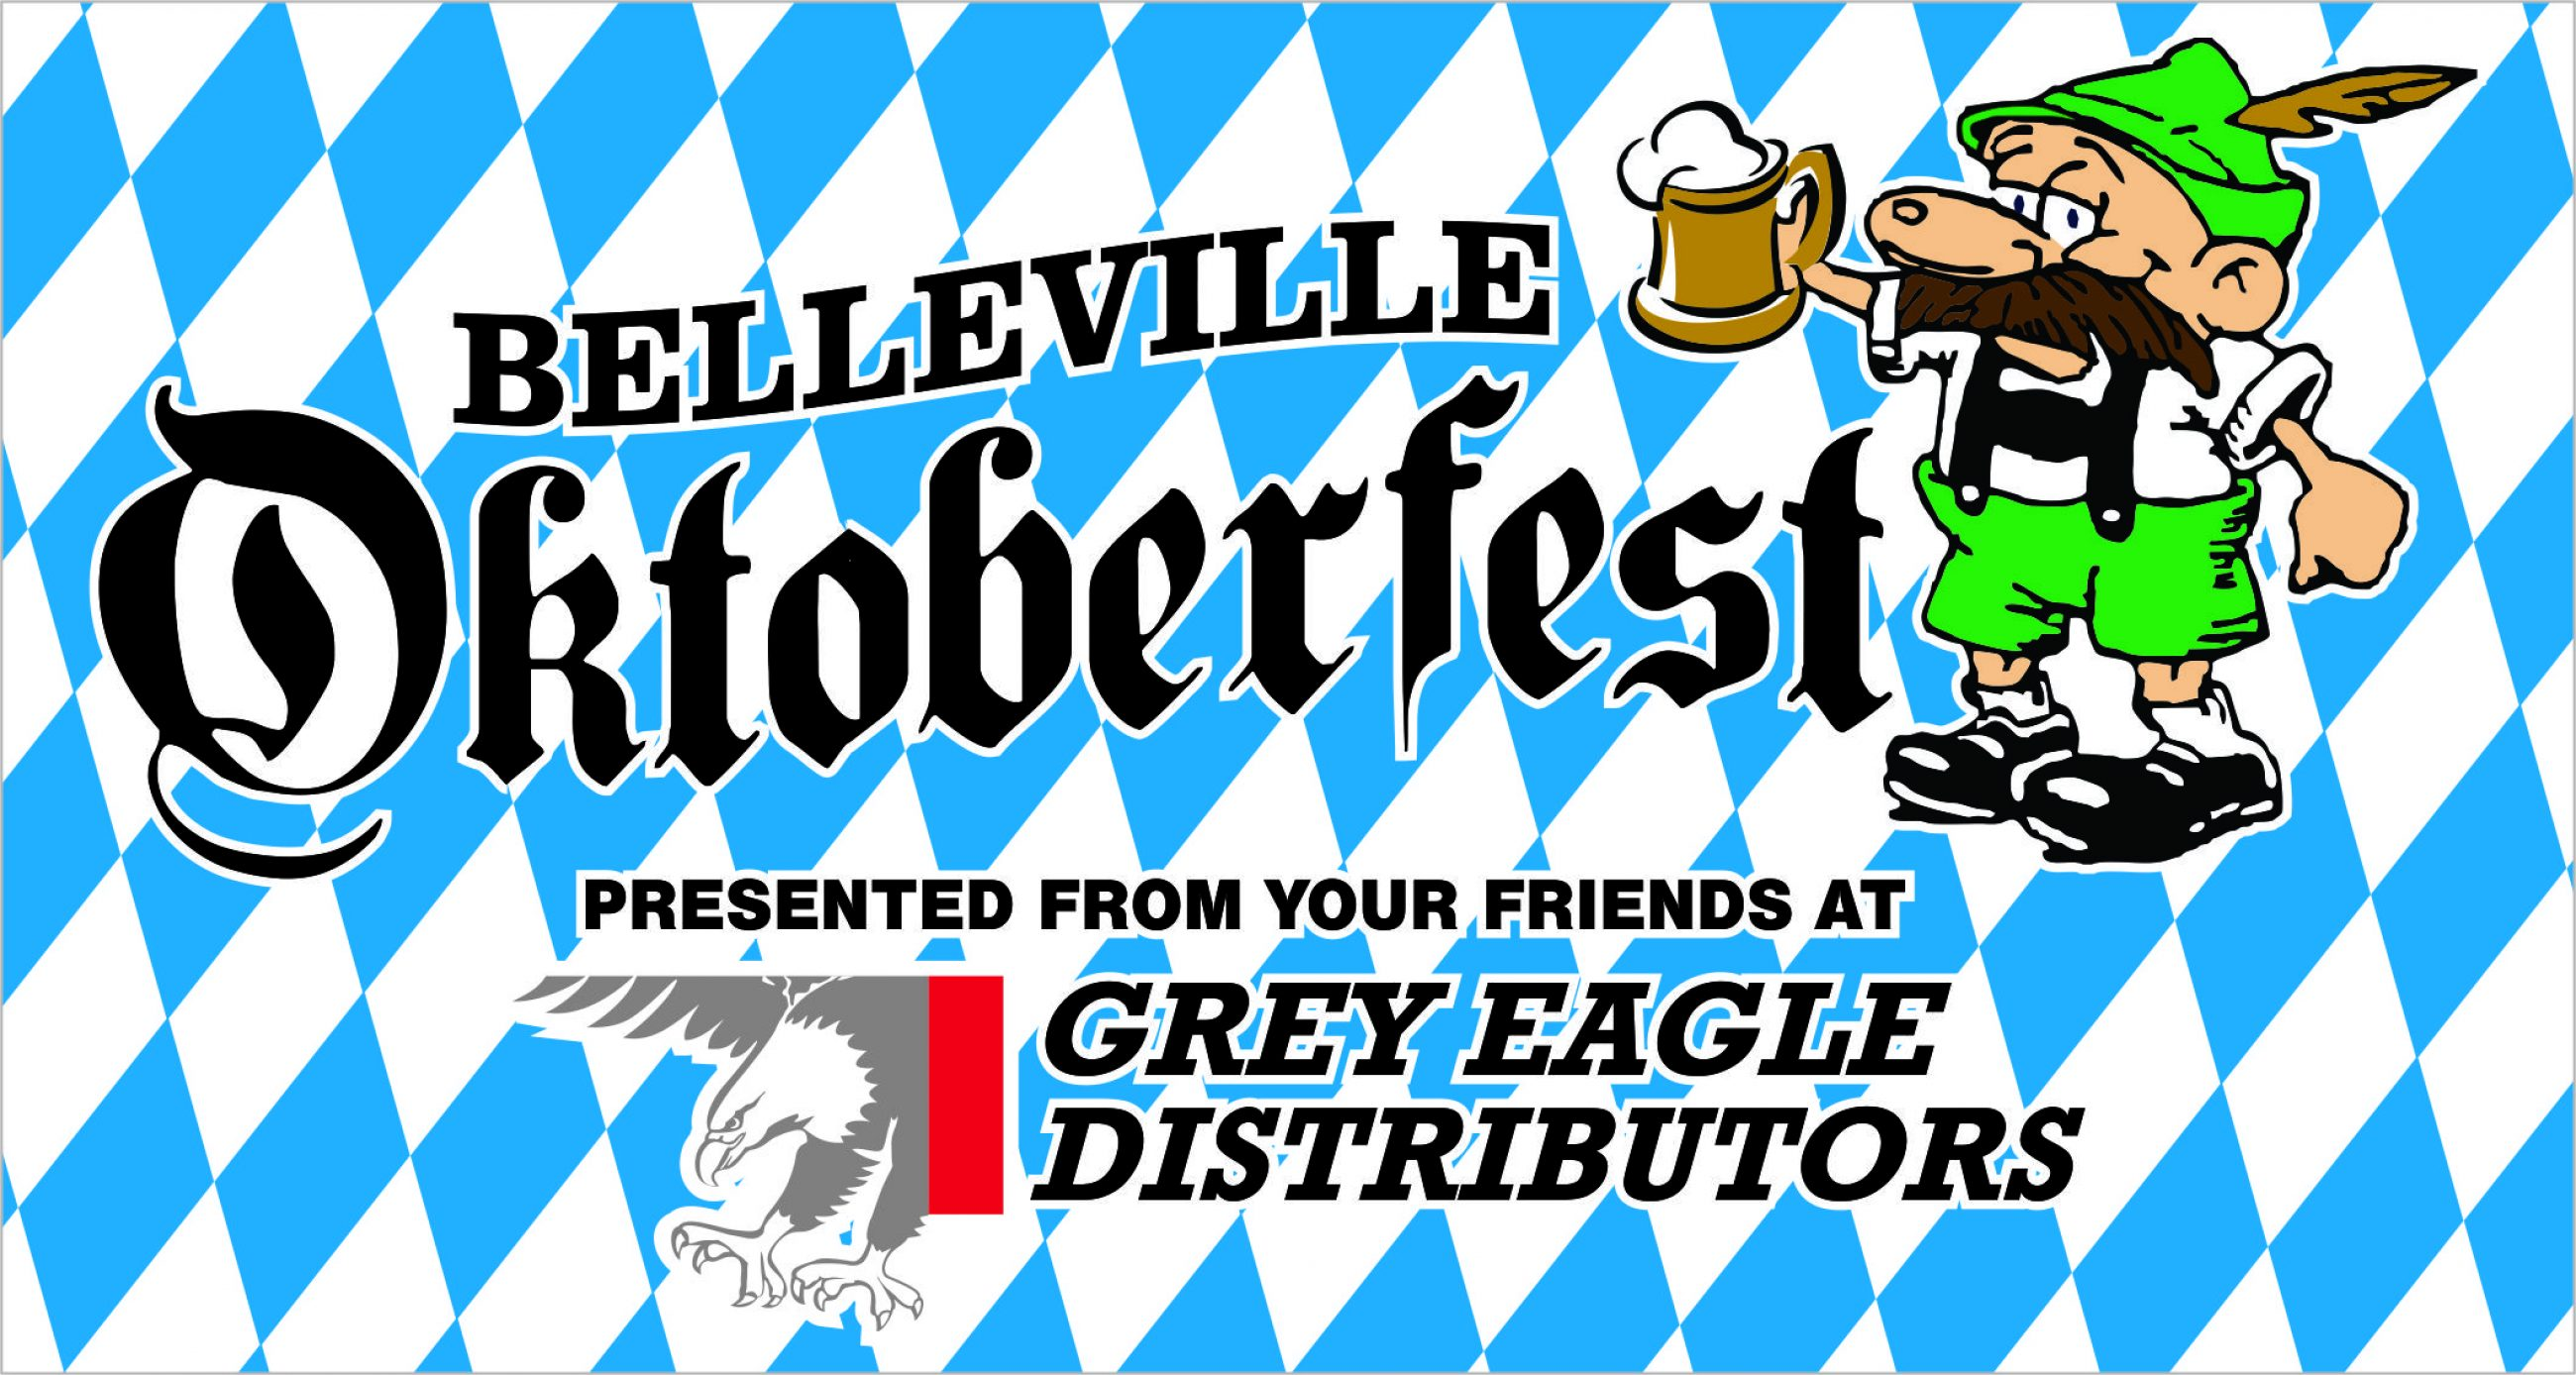 40th + 1 Annual Belleville Oktoberfest